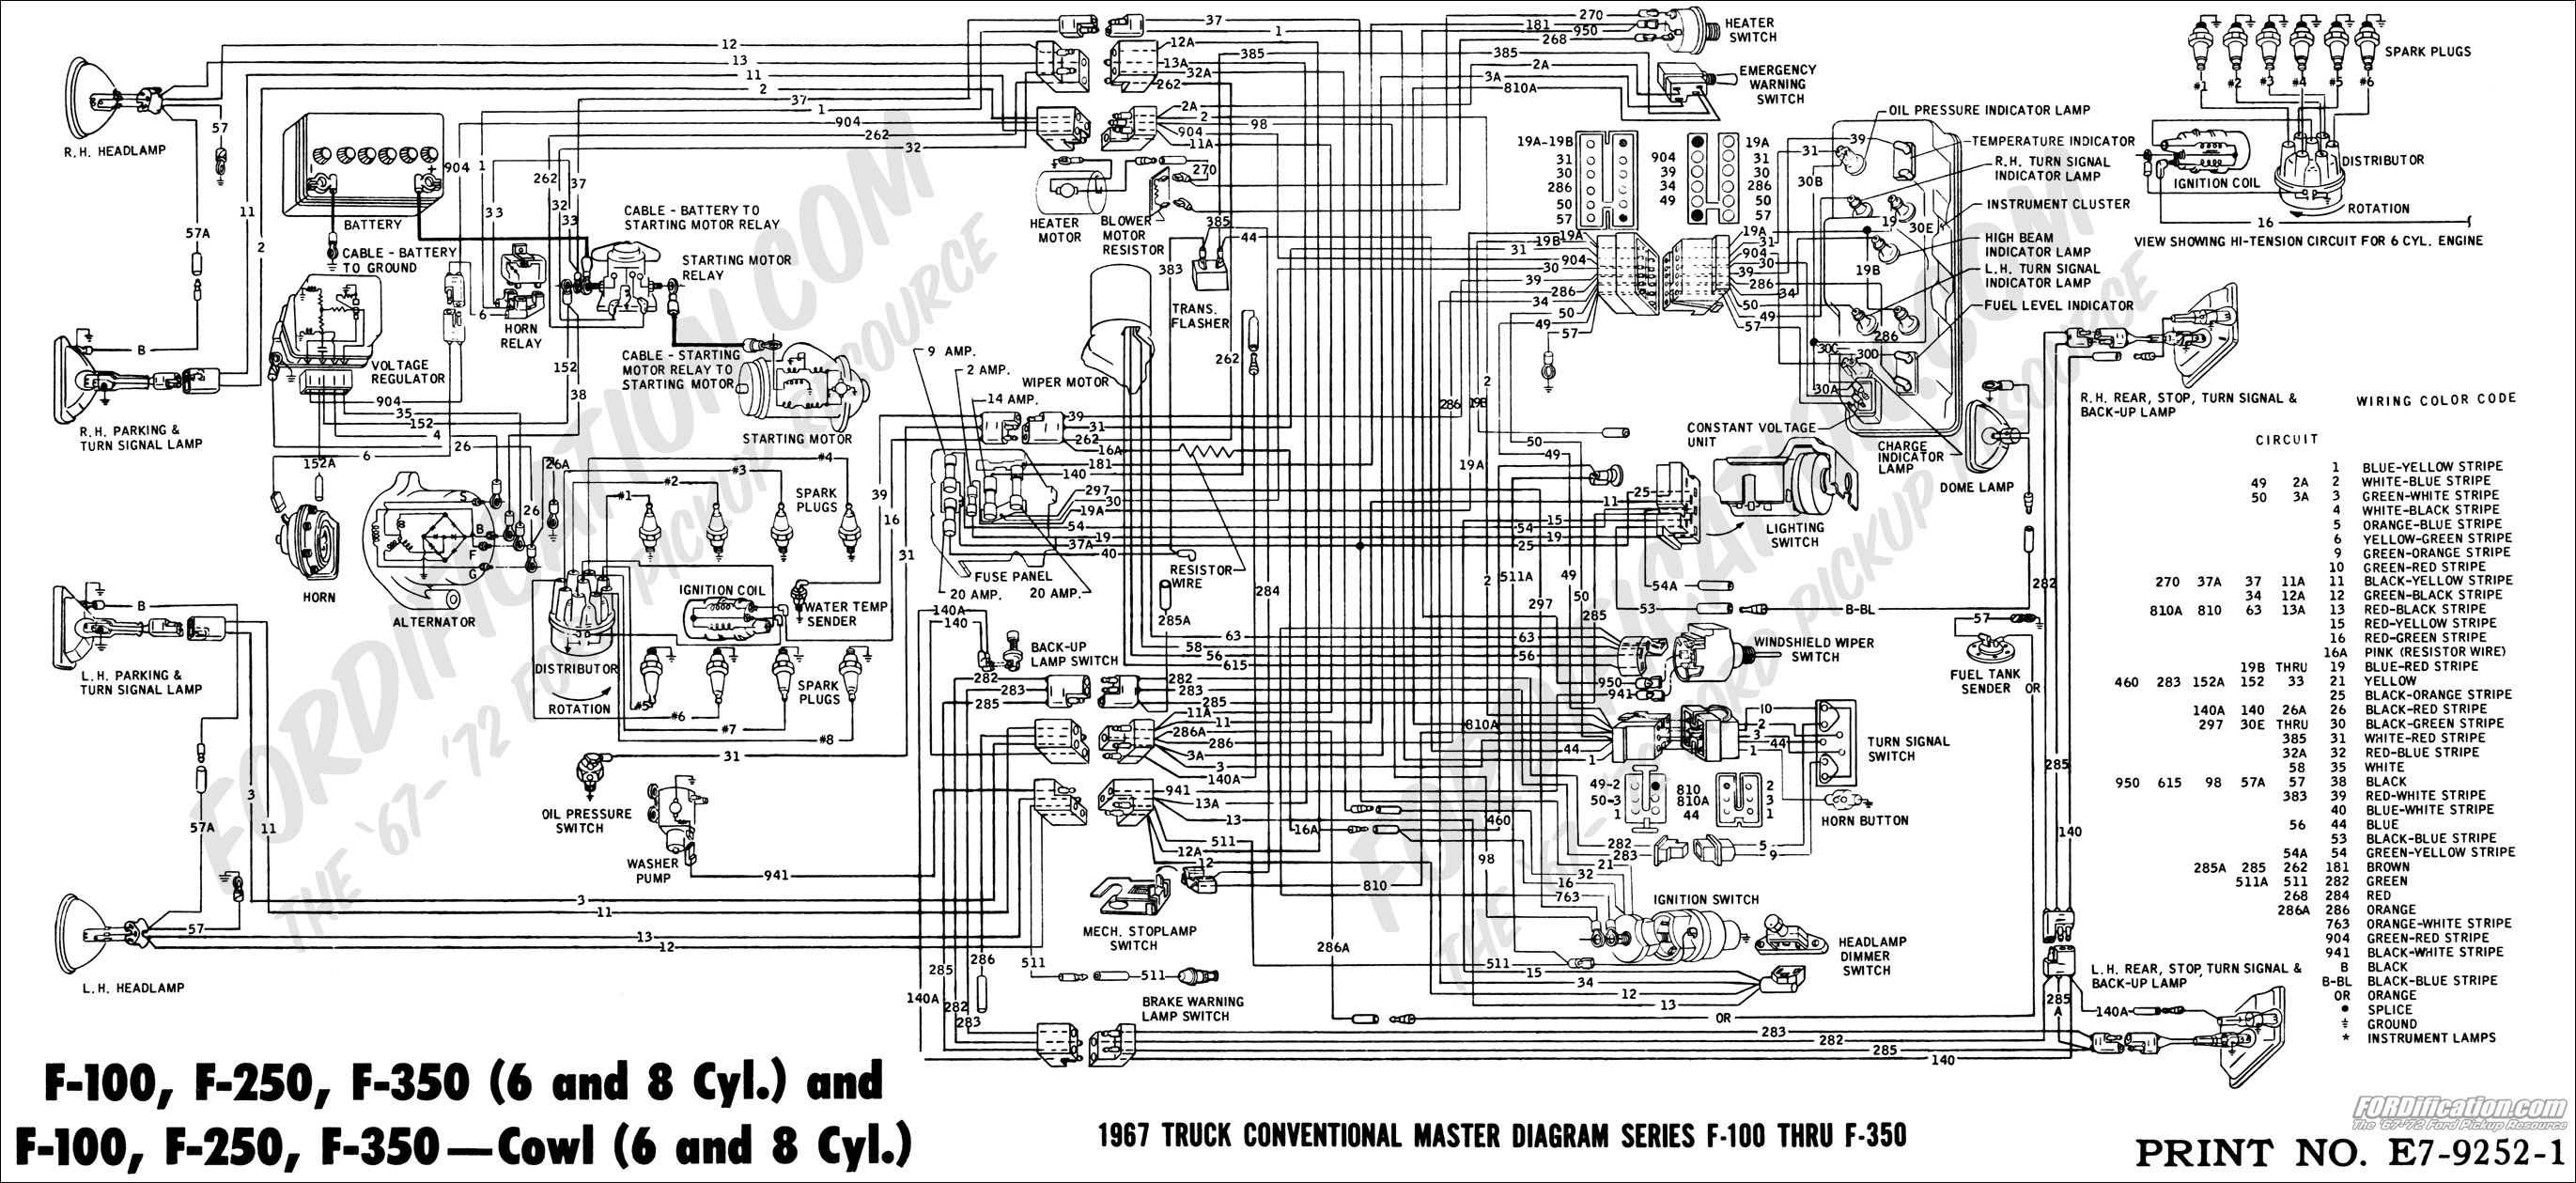 1967 ford wiring diagram wiring diagram m6 Ford Econoline Wiring-Diagram Fuel 1967 ford f150 wiring diagram online wiring diagram 1967 ford mustang wiring diagram 1967 ford ranger